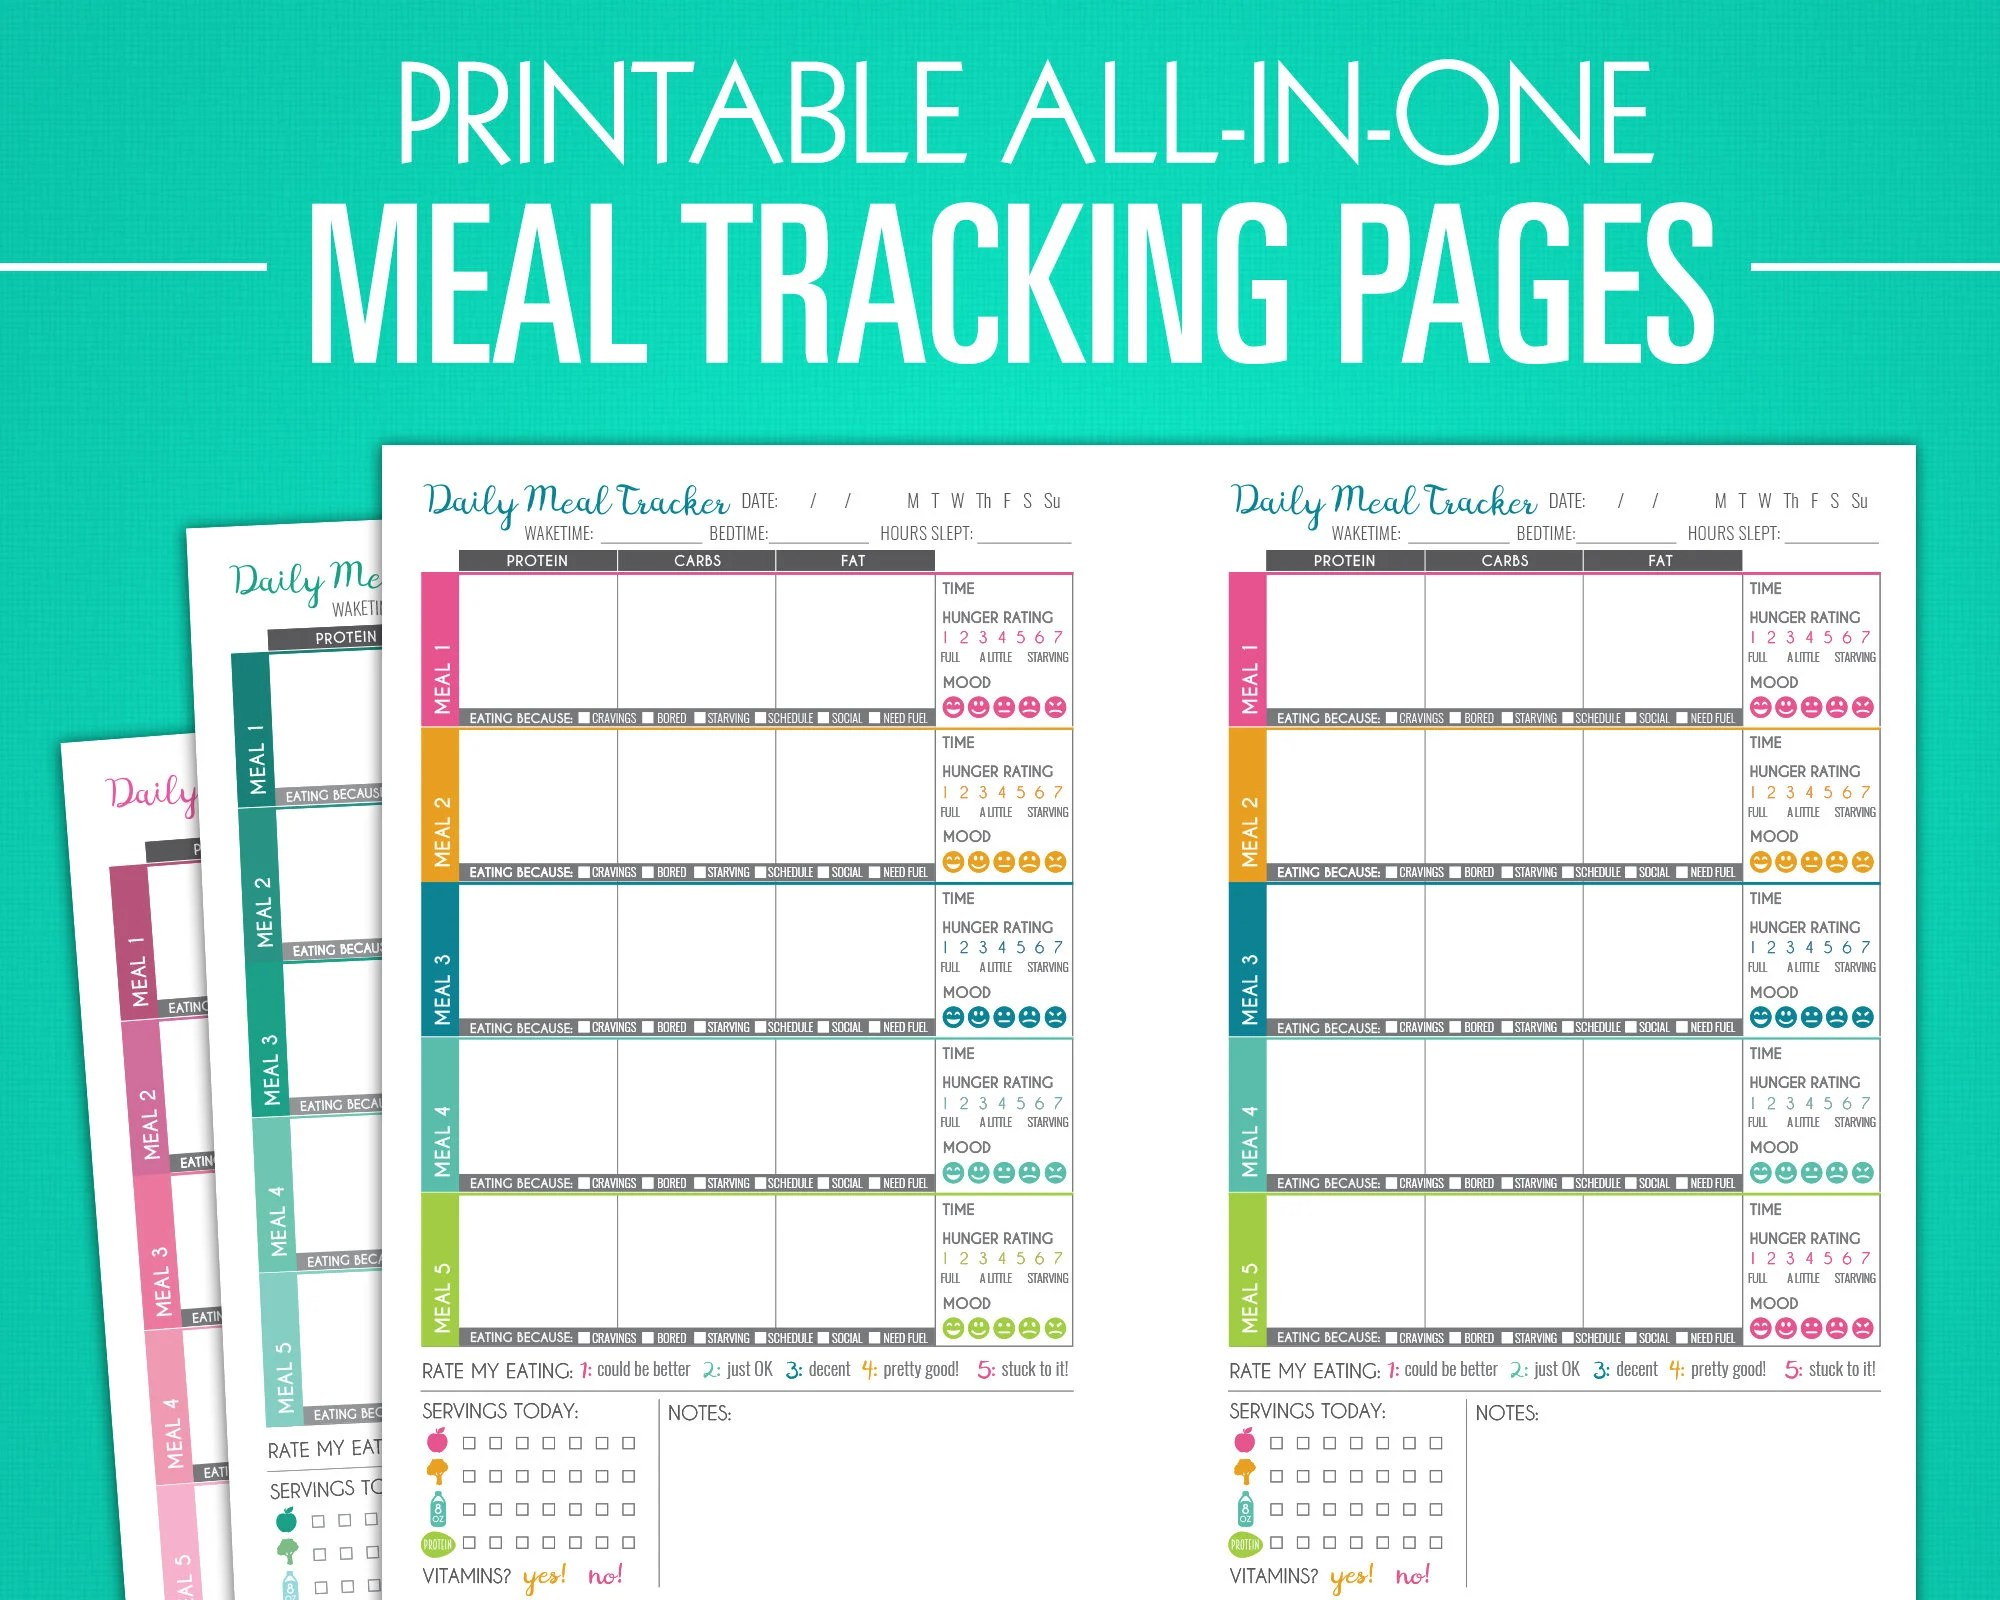 Printable Meal Tracking Pages